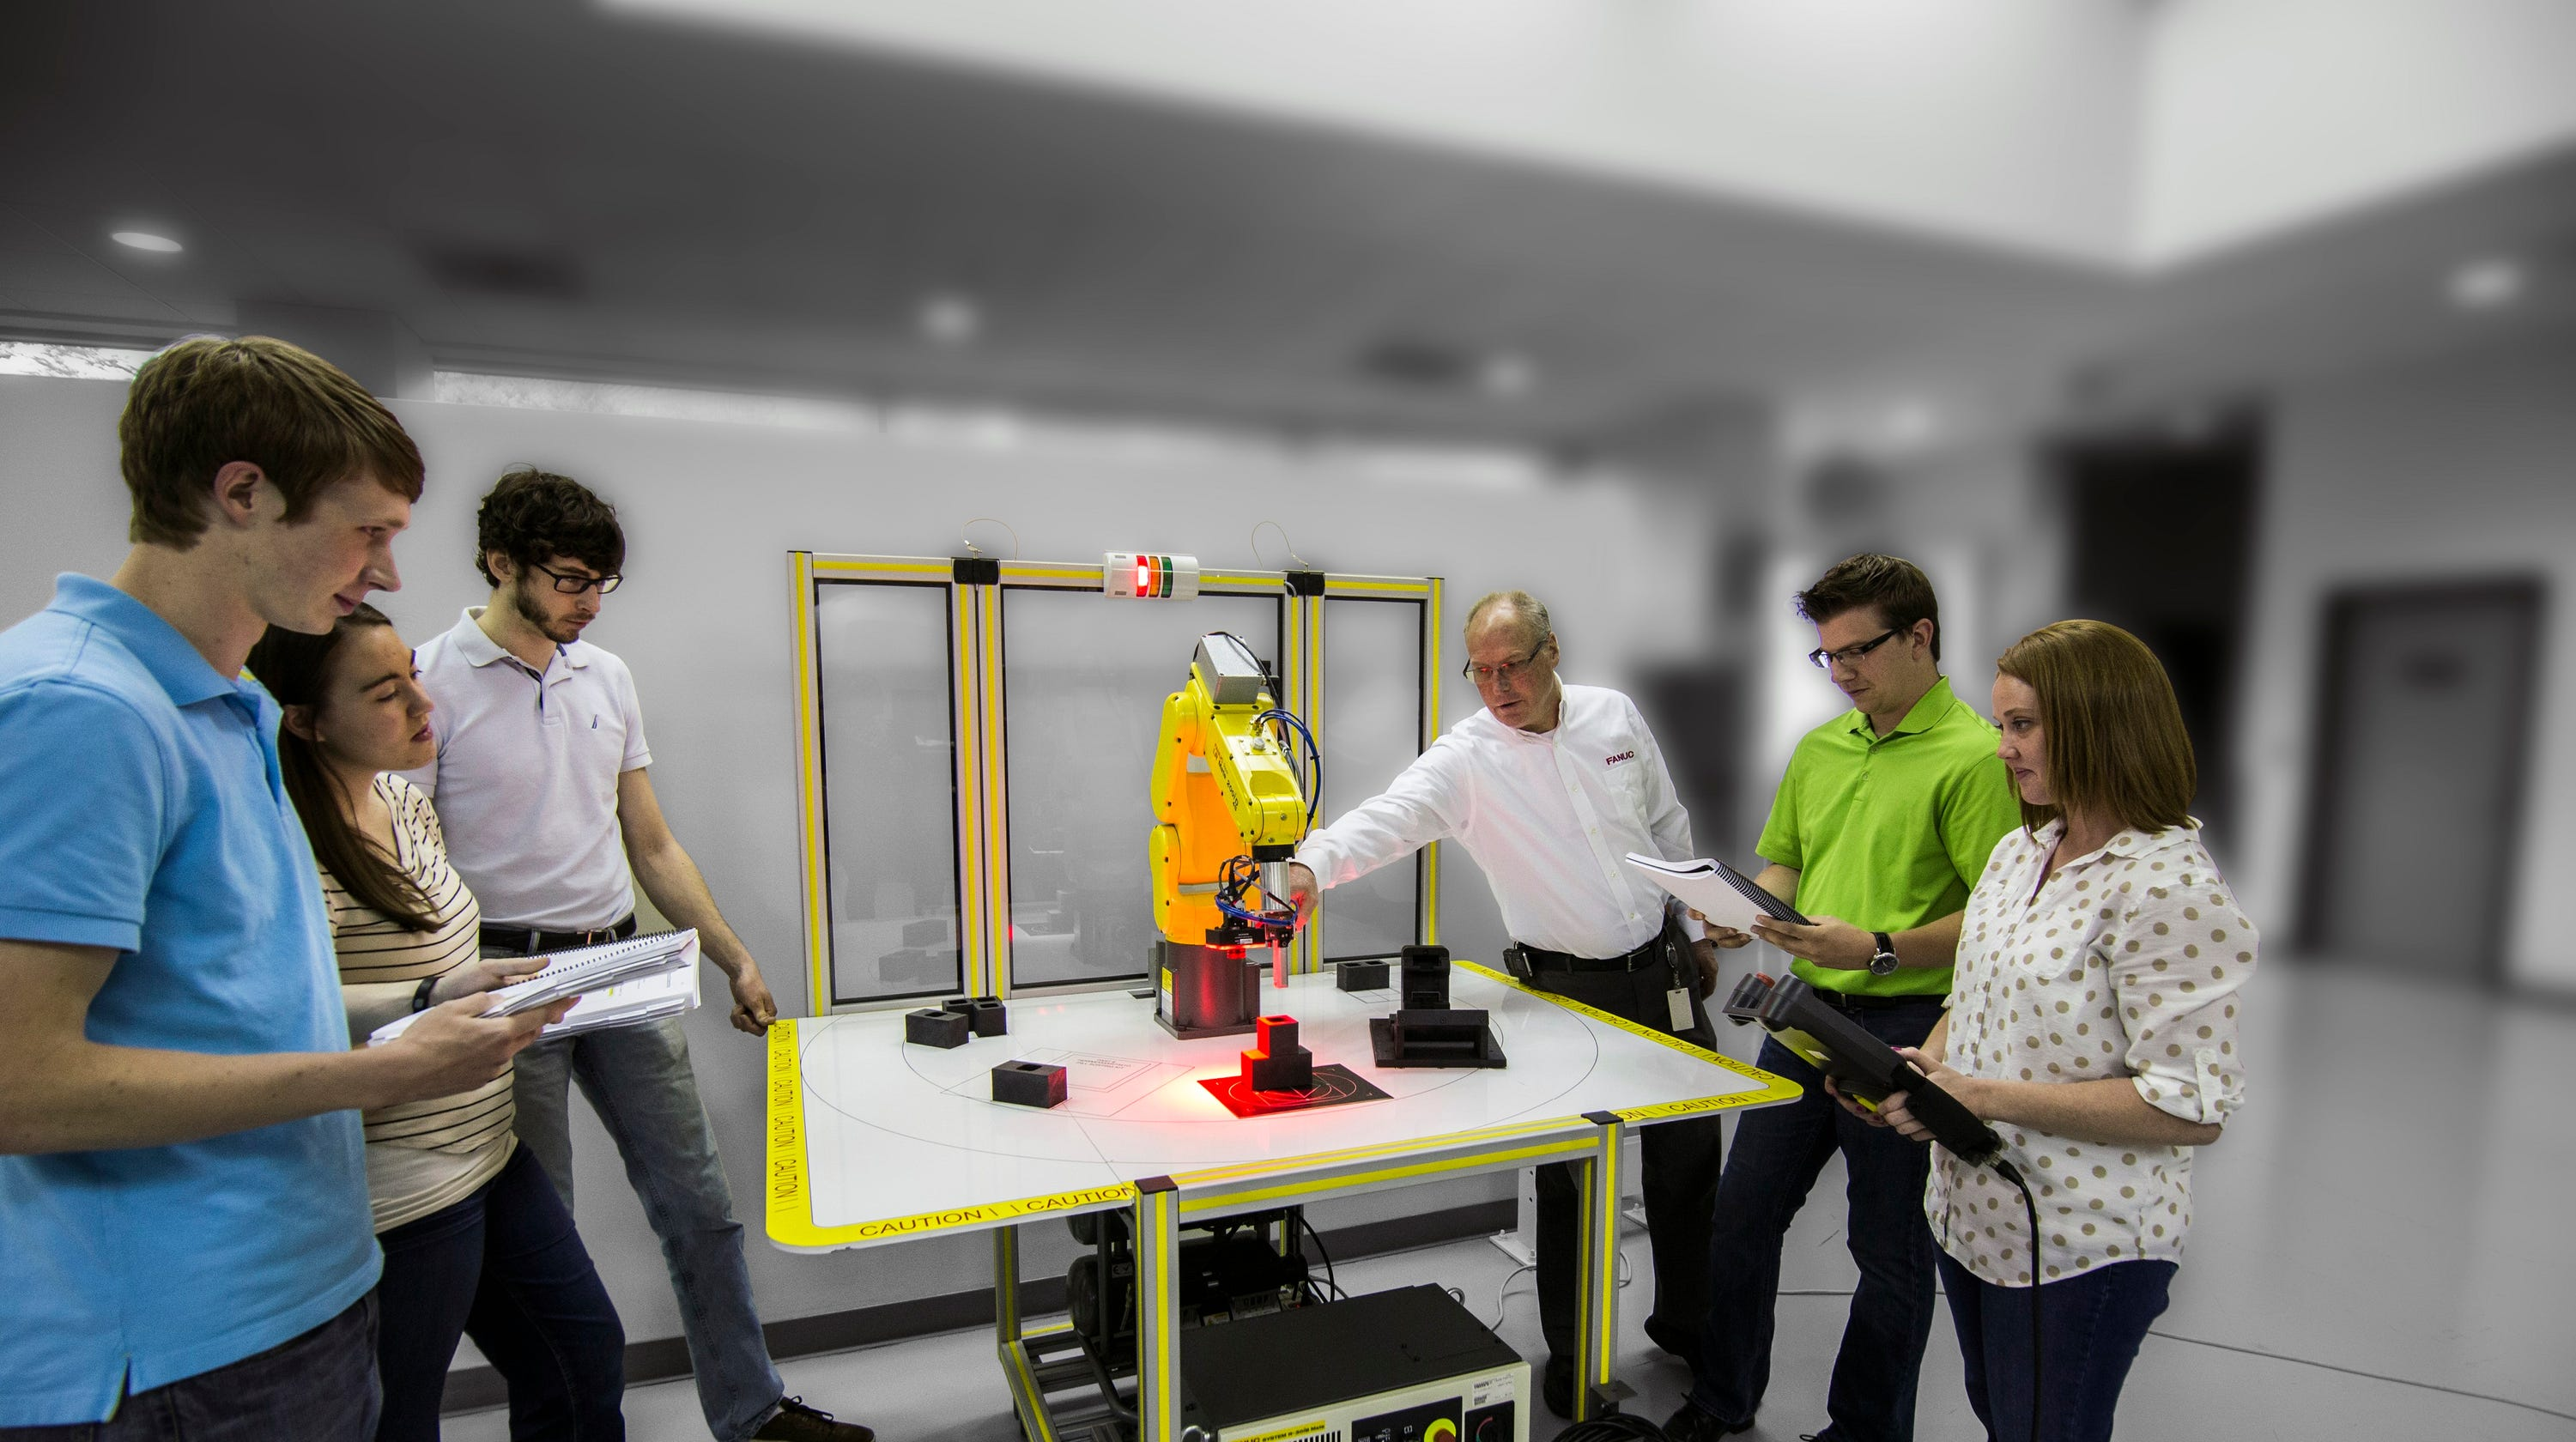 Advanced manufacturing training comes to Cros-Lex